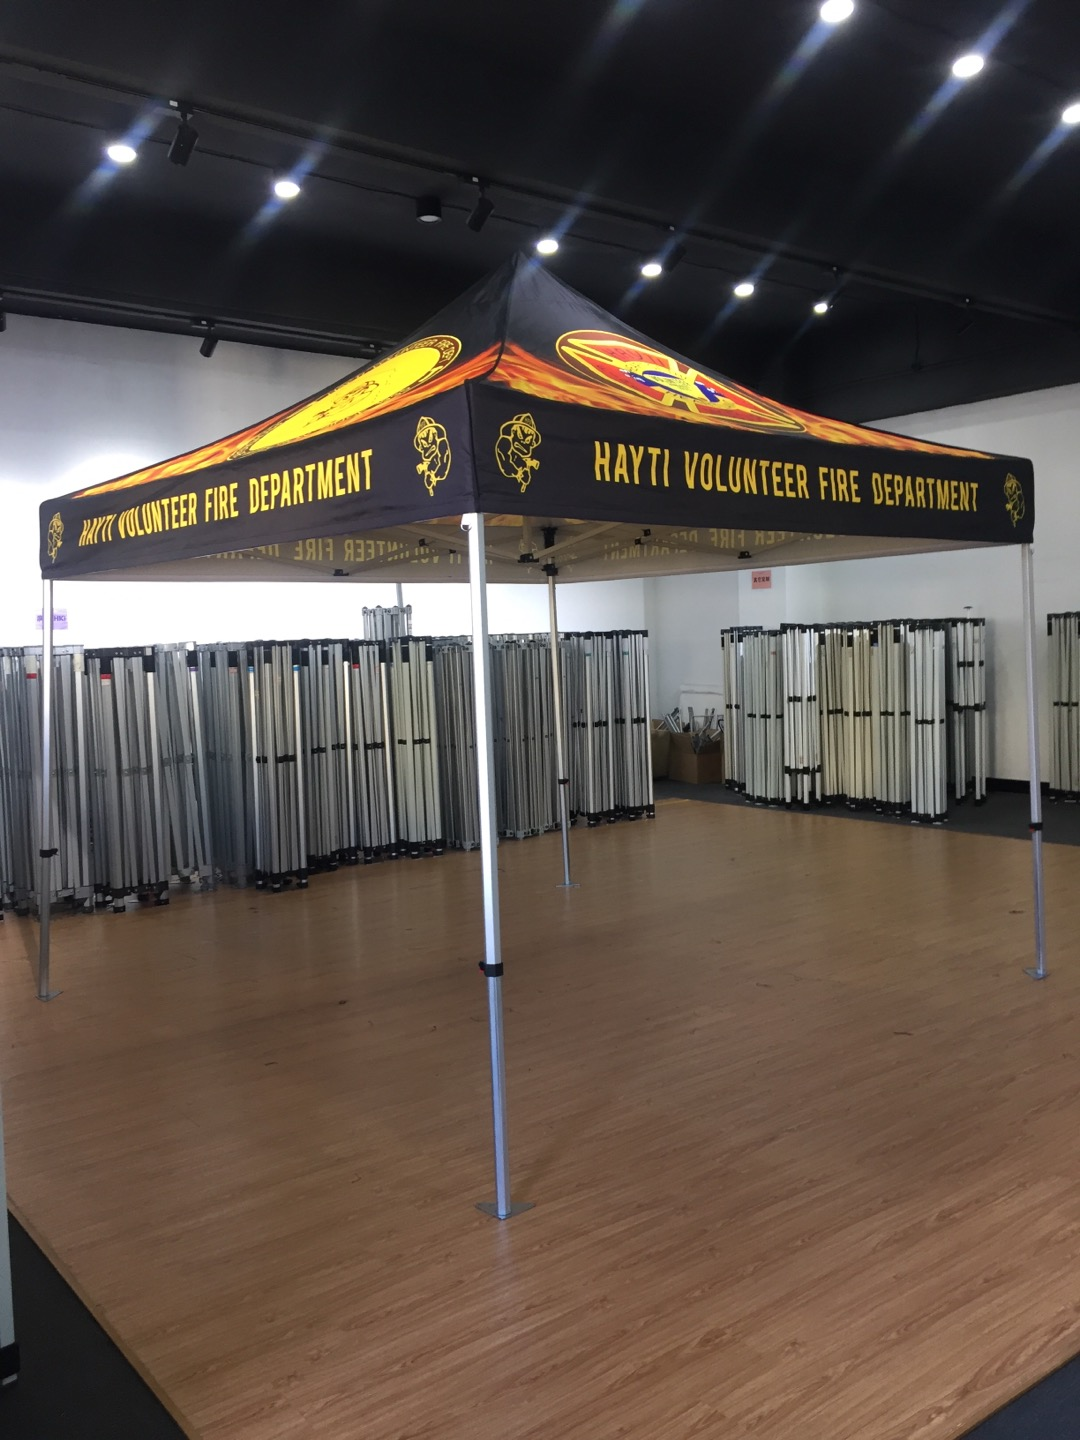 custom canopy, custom sublimated tent, custom pop up canopy, custom canopies, custom ez up tent, sublimated canopies, sublimated tents, custom 10x10 tent, custom 10x20 tent, custom 13x26 tent, 10x10 pop up canopies, 10x20 pop up canopies, 13x26 pop up canopies, sublimated table covers, sublimated flags, custom table covers, custom feather flags, best custom canopies, best custom tents, highest quality custom tents, drag racing canopies, drag racing tents, racing canopies, racing tents,